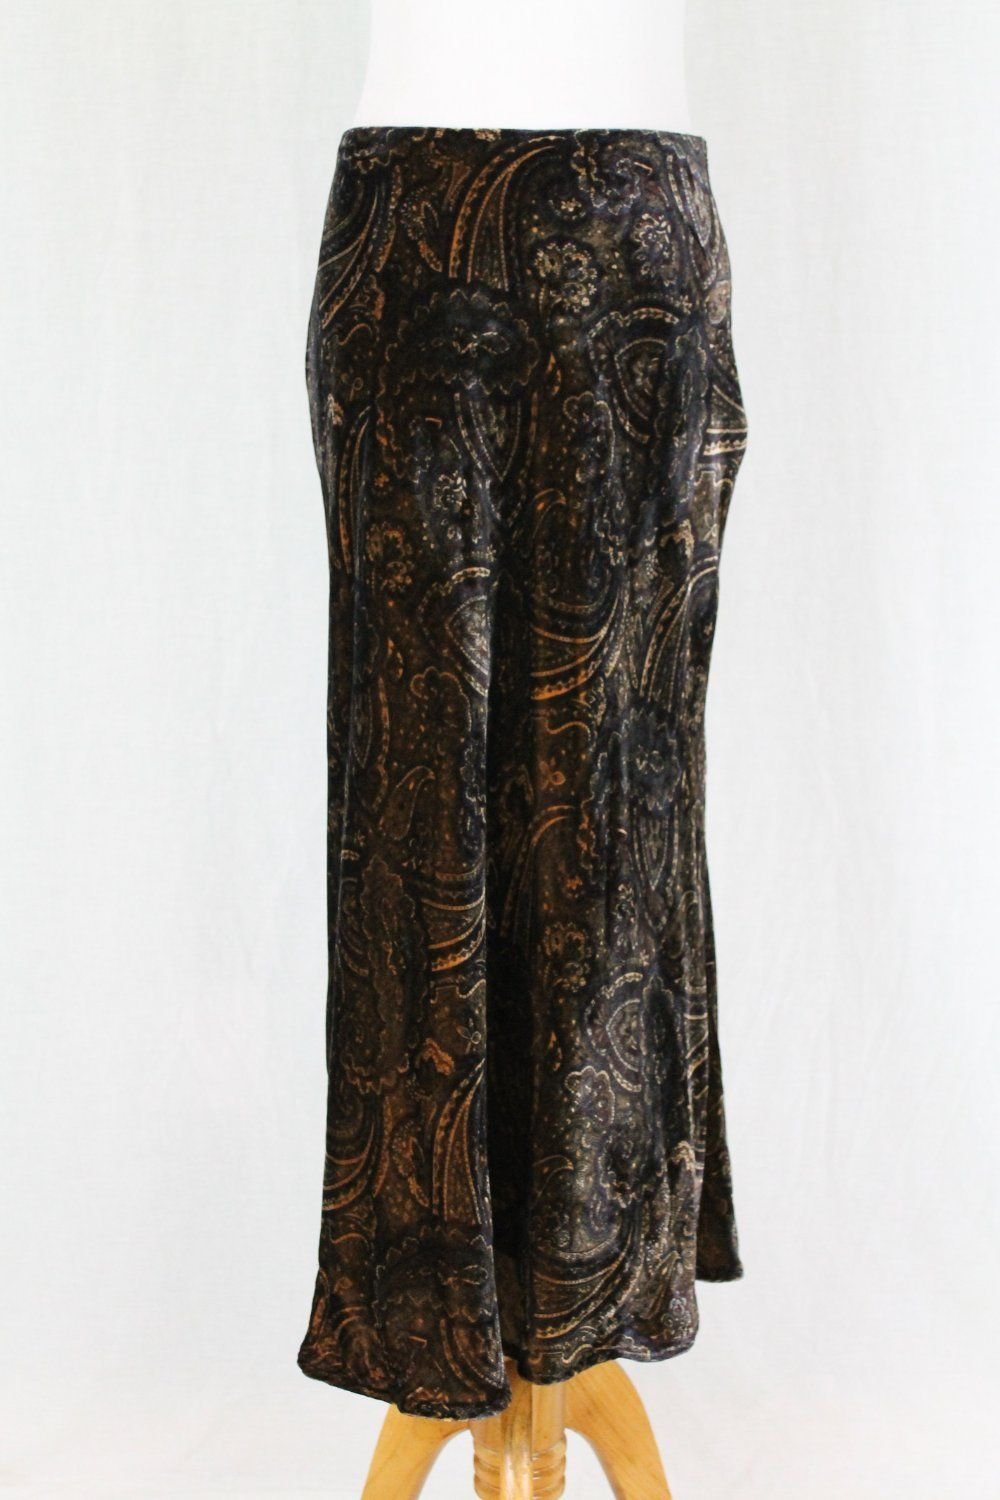 Ralph Lauren Skirt Bias Cut Black & Blue Paisley Velvet Long Midi length 6P